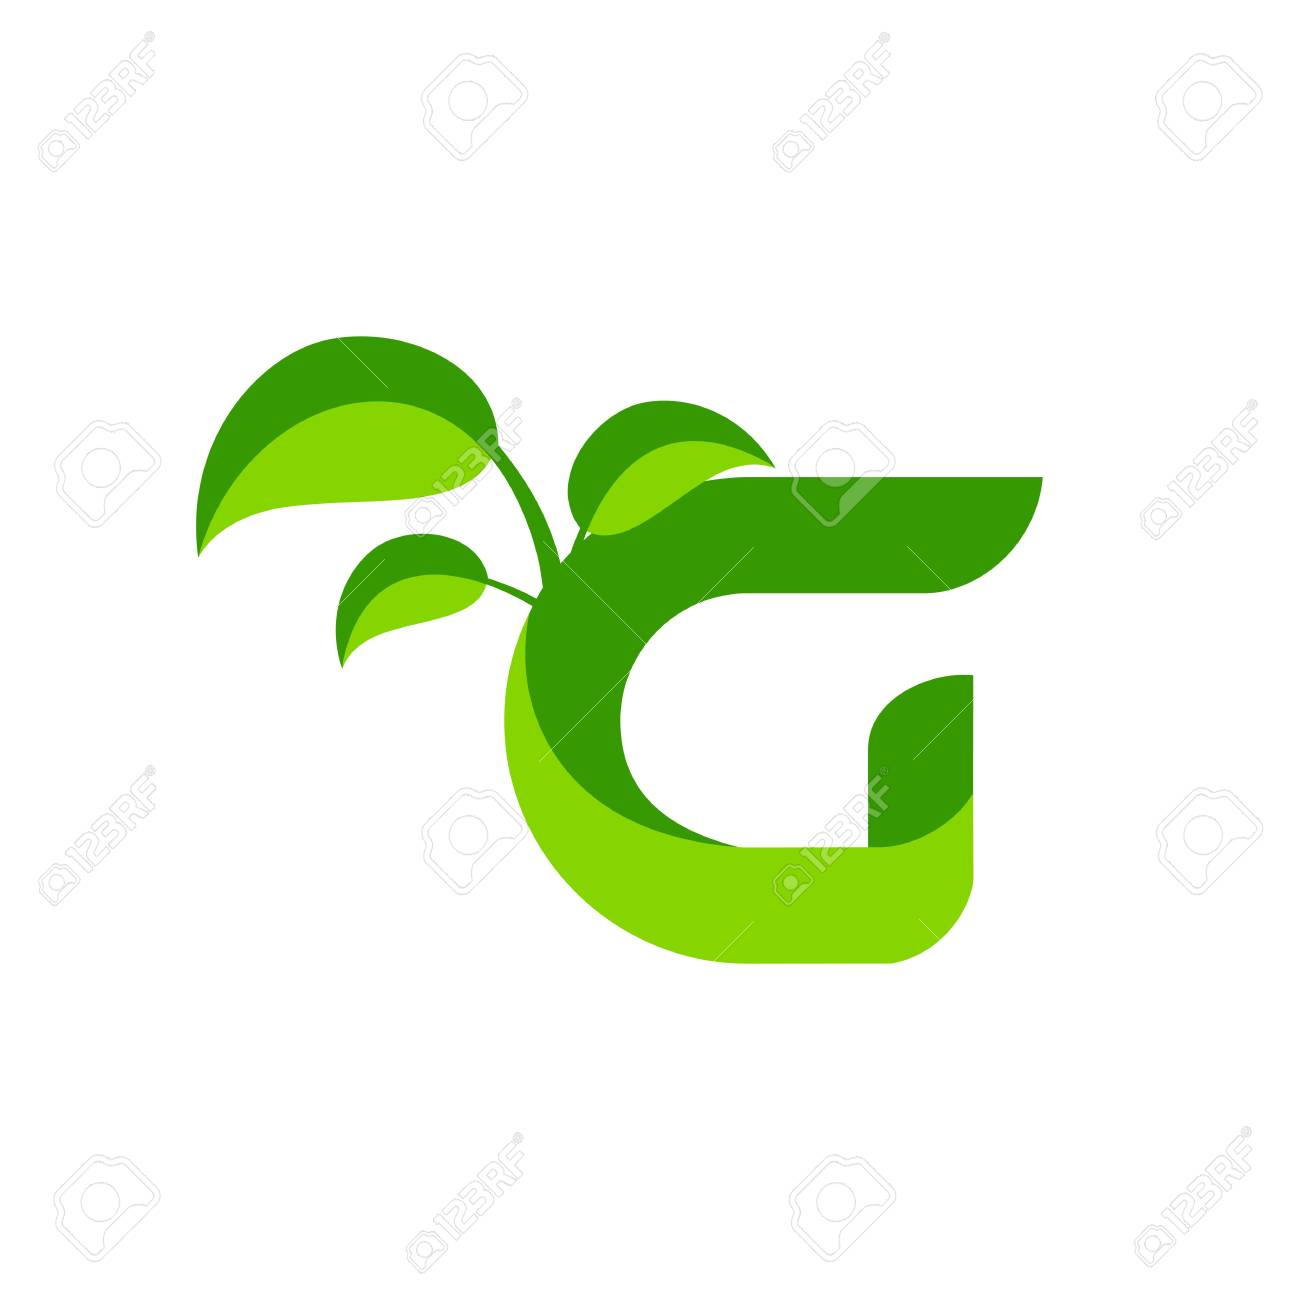 Nature Green Leaf Symbol With Initial G Icon Design Royalty Free